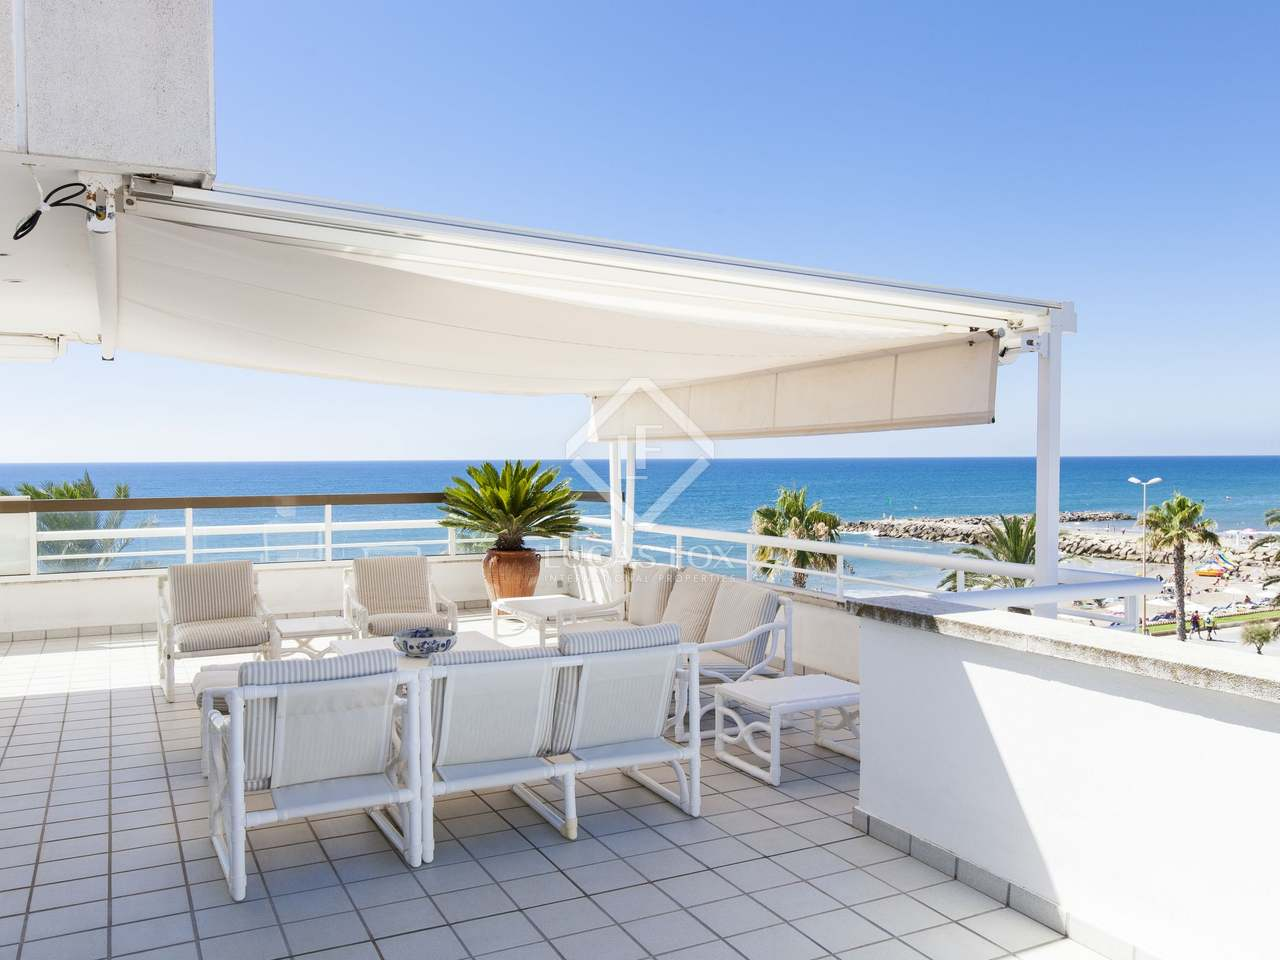 7 bedroom duplex penthouse with terraces for sale in sitges for Duplex bed